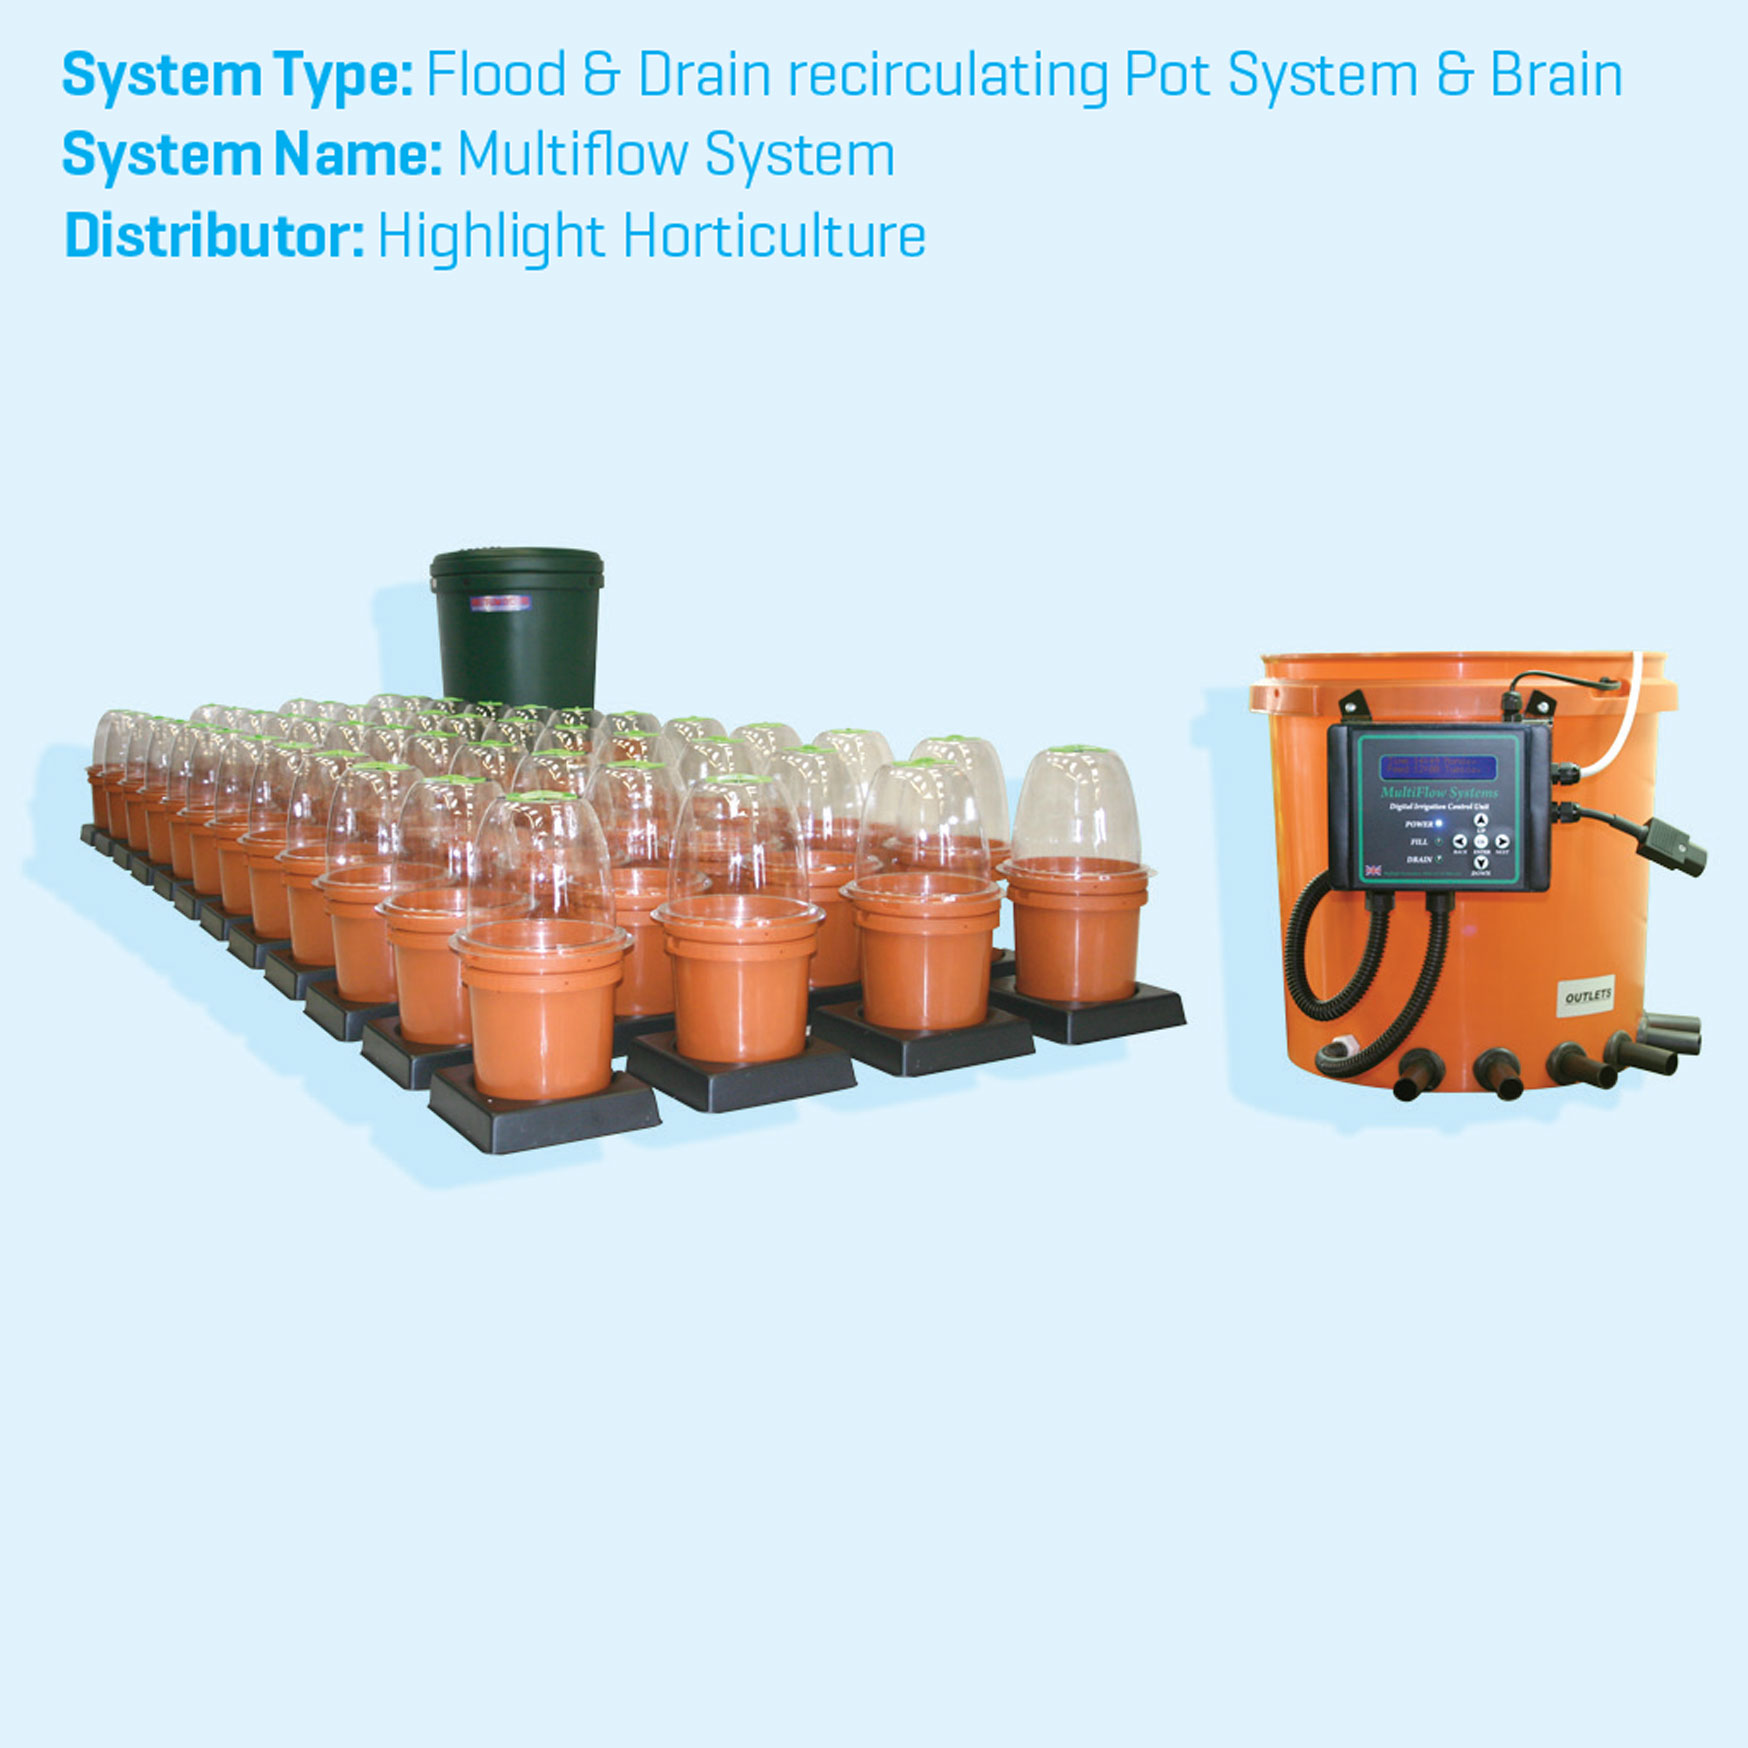 Multiflow Recirculating Flood and drain hydroponics systems